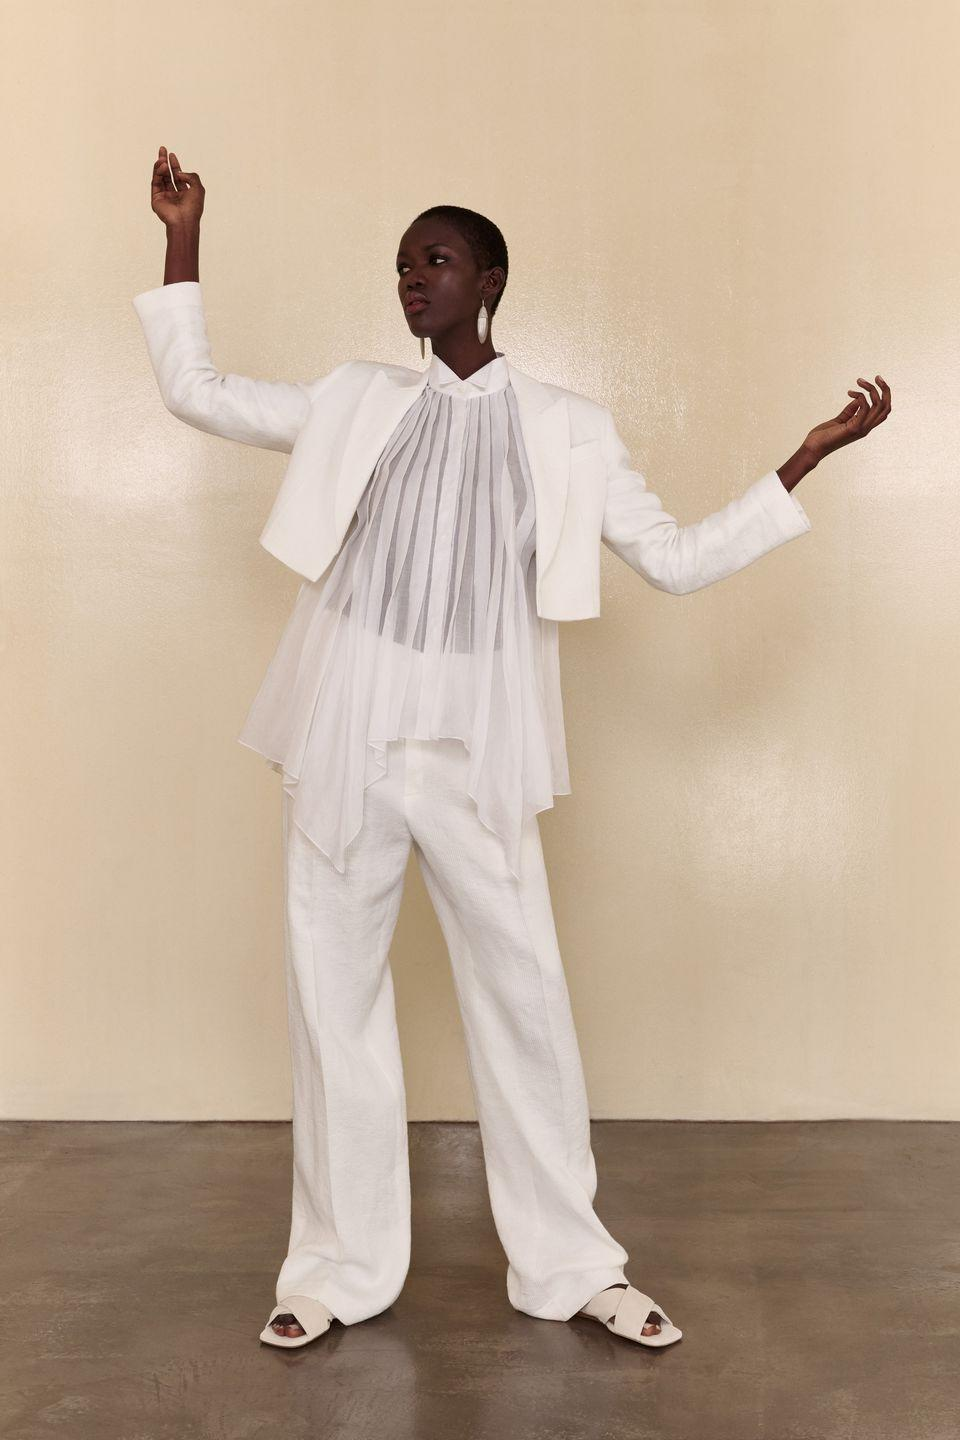 """<p>For many women, the current vibe is """"love thy loungewear as thyself."""" Brunello Cucinelli is cool with that—but he's going to give you a major upgrade. The Italian label went into full slouch mode with his latest collection, which mixes slinky metallic knitwear and silky pleated separates that feel like PJs, but look like you've consulted a famous Italian tailor. (Maybe because one made these clothes...) And though some models did wear sweatbands and tube socks as part of their looks, these pieces are made to be so easily cool, you can get dressed for work without breaking a sweat. Pay special attention to the suiting and square-toed ballet flats, along with a red embroidered varsity sweater that's truly game for anything. —<em>Faran Krentcil</em></p>"""